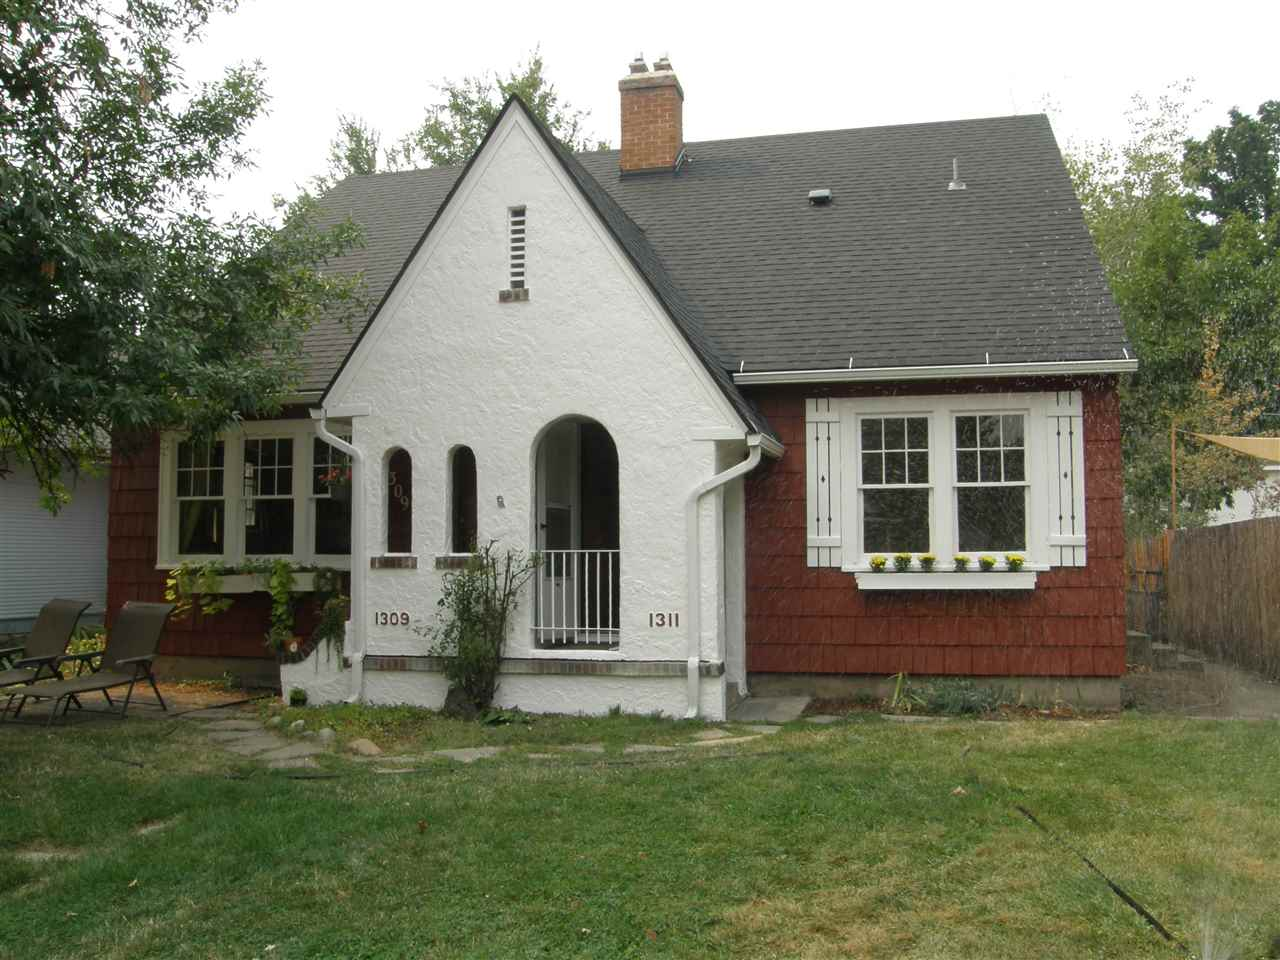 1309 & 1311 N 13th, Boise, Idaho 83702, 4 Bedrooms, 2 Bathrooms, Rental For Rent, Price $379,000, 98669506